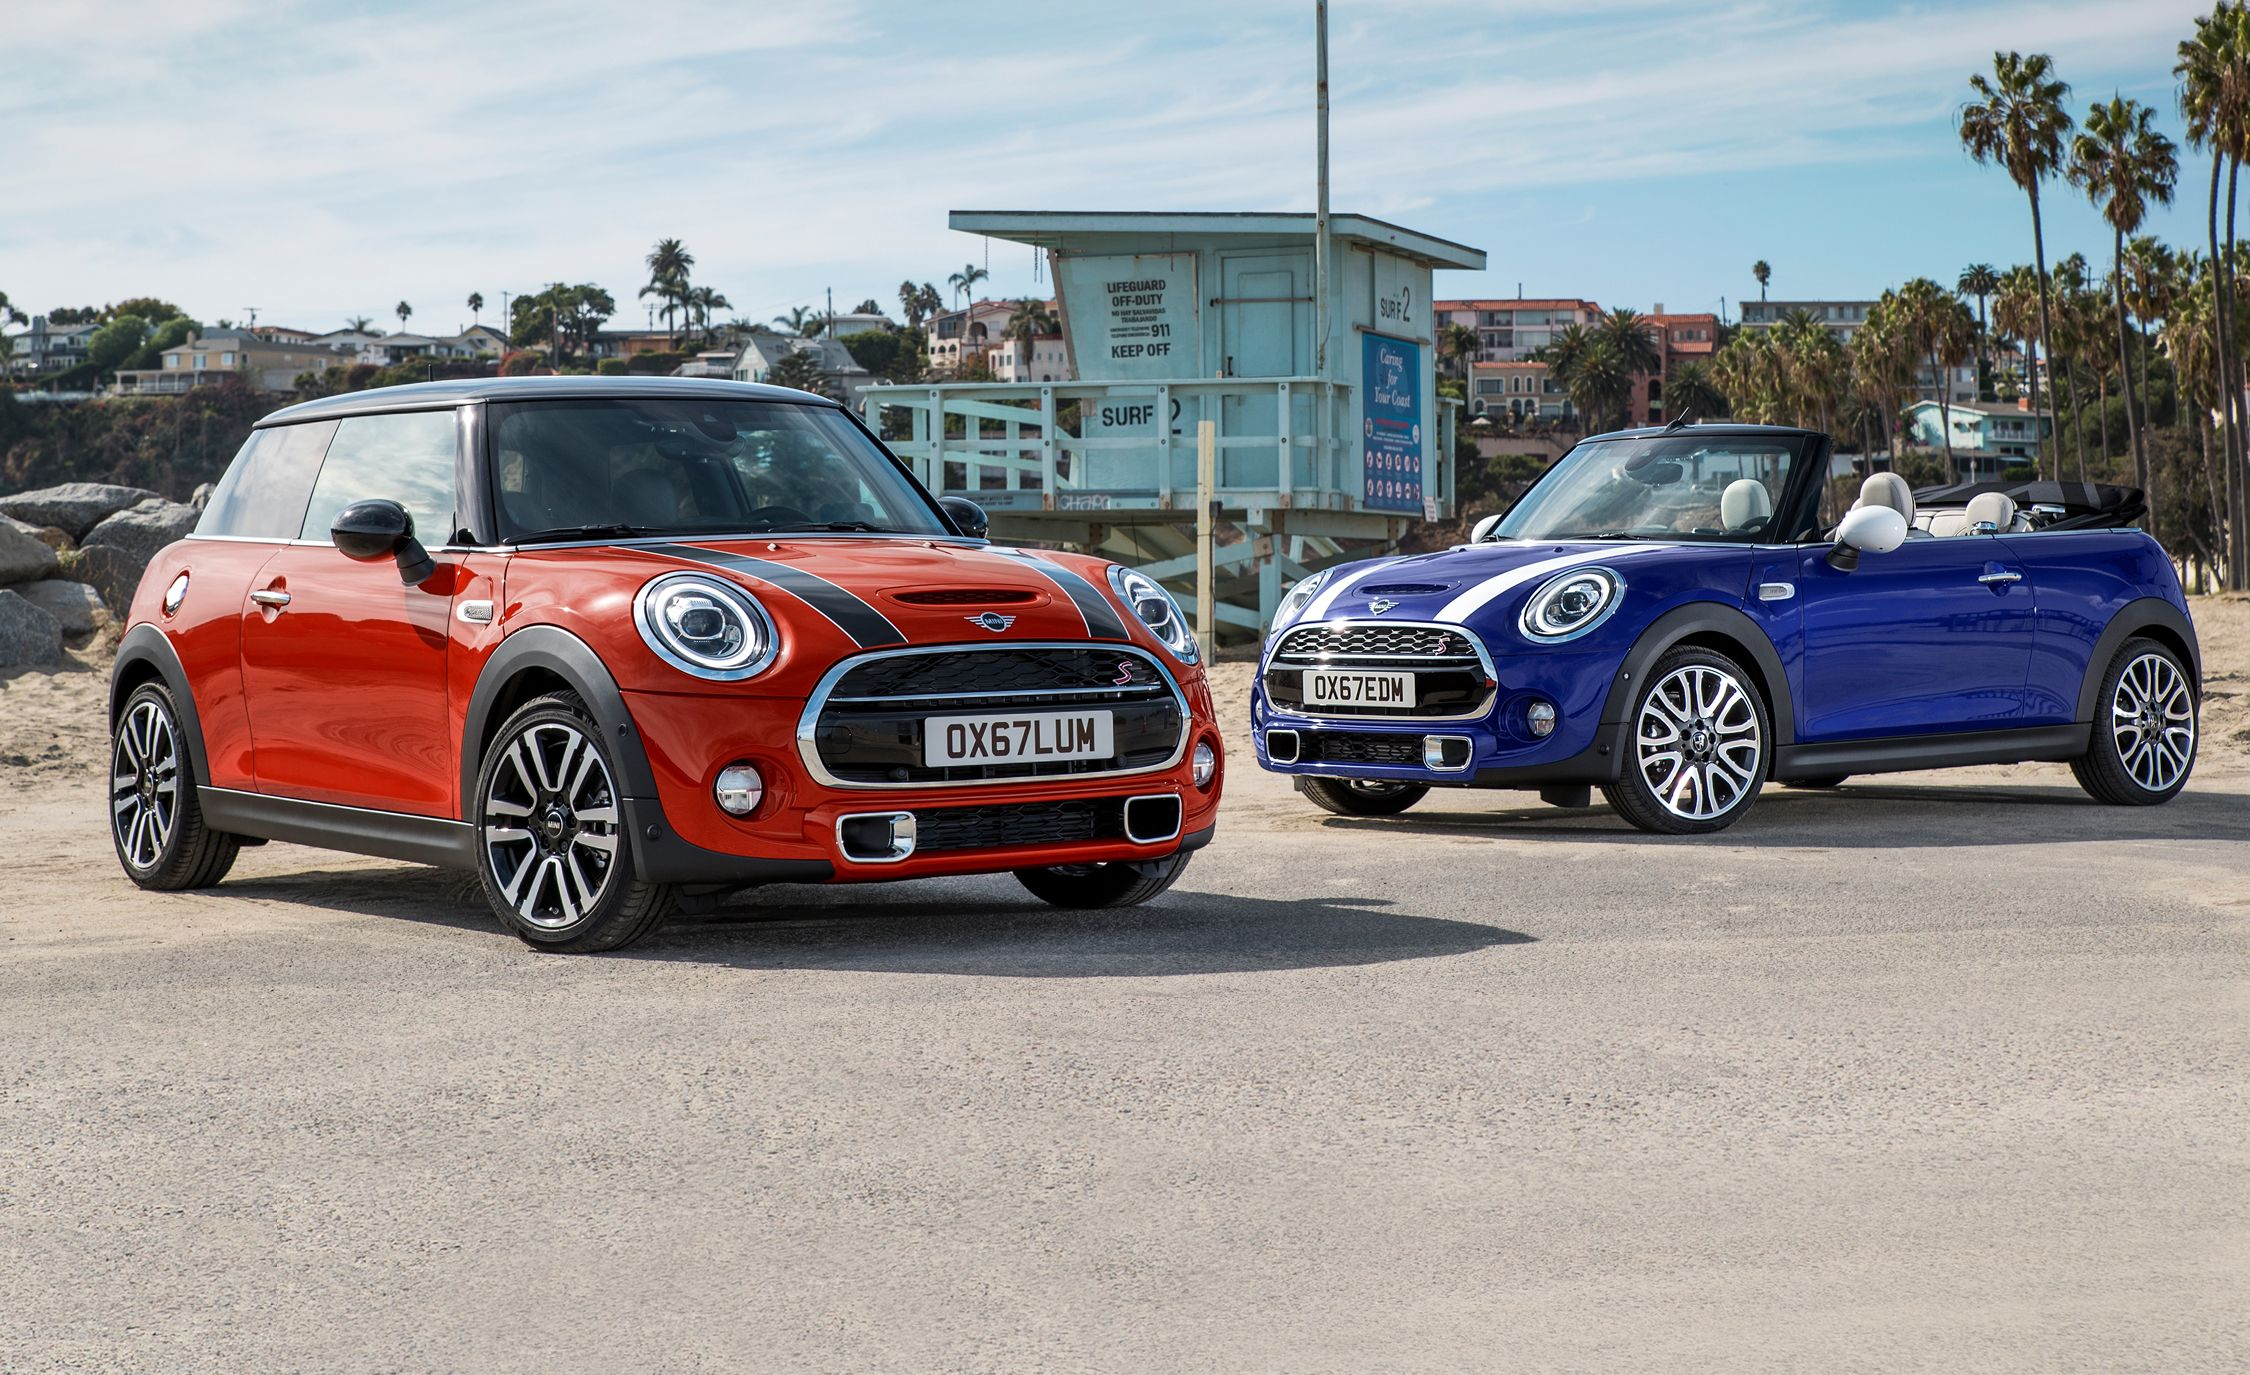 2019 Mini Cooper Hardtop S Reviews Mini Cooper Hardtop S Price